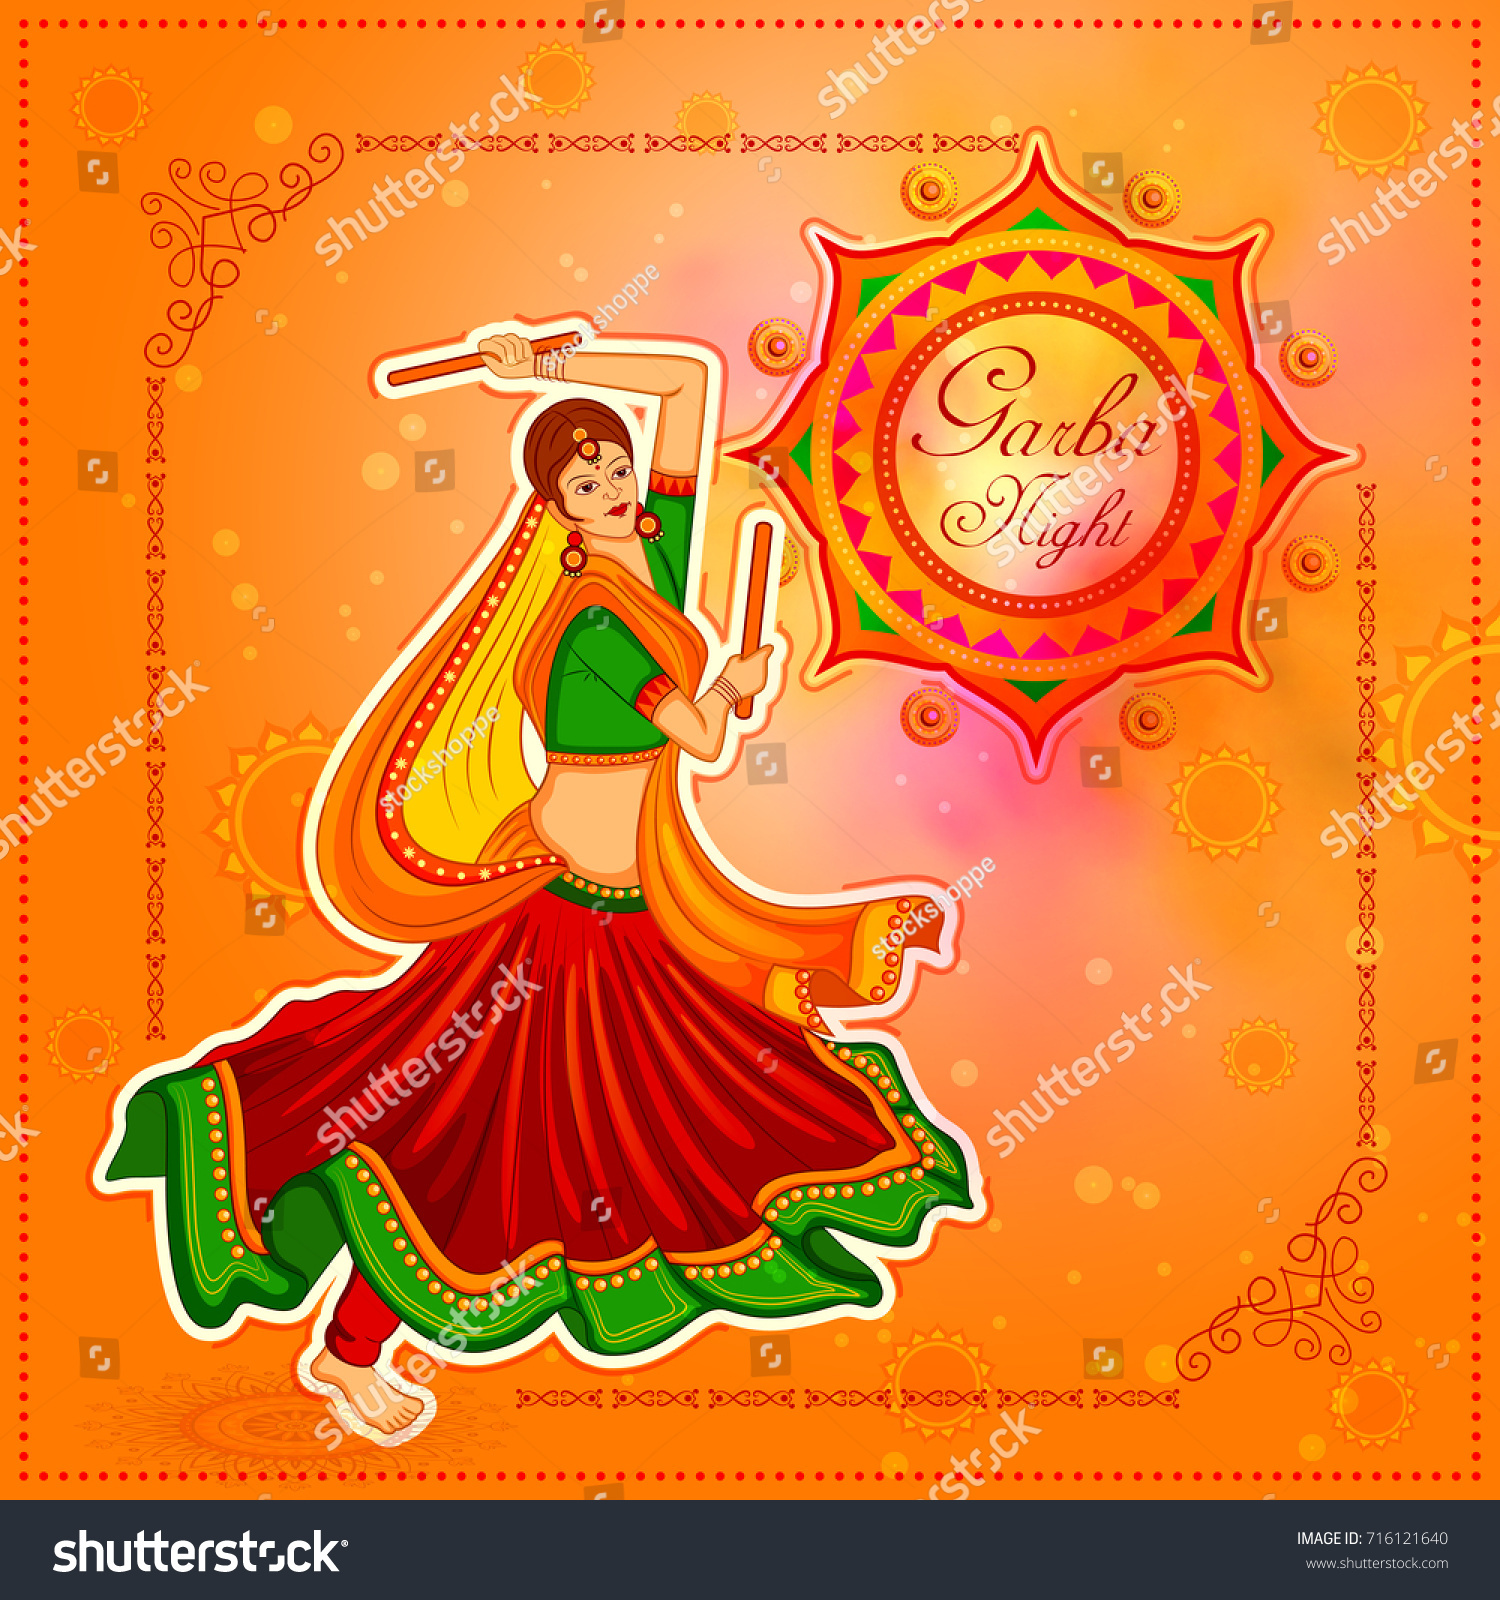 Vector Illustration People Performing Garba Dance Stock Vector Royalty Free 716121640